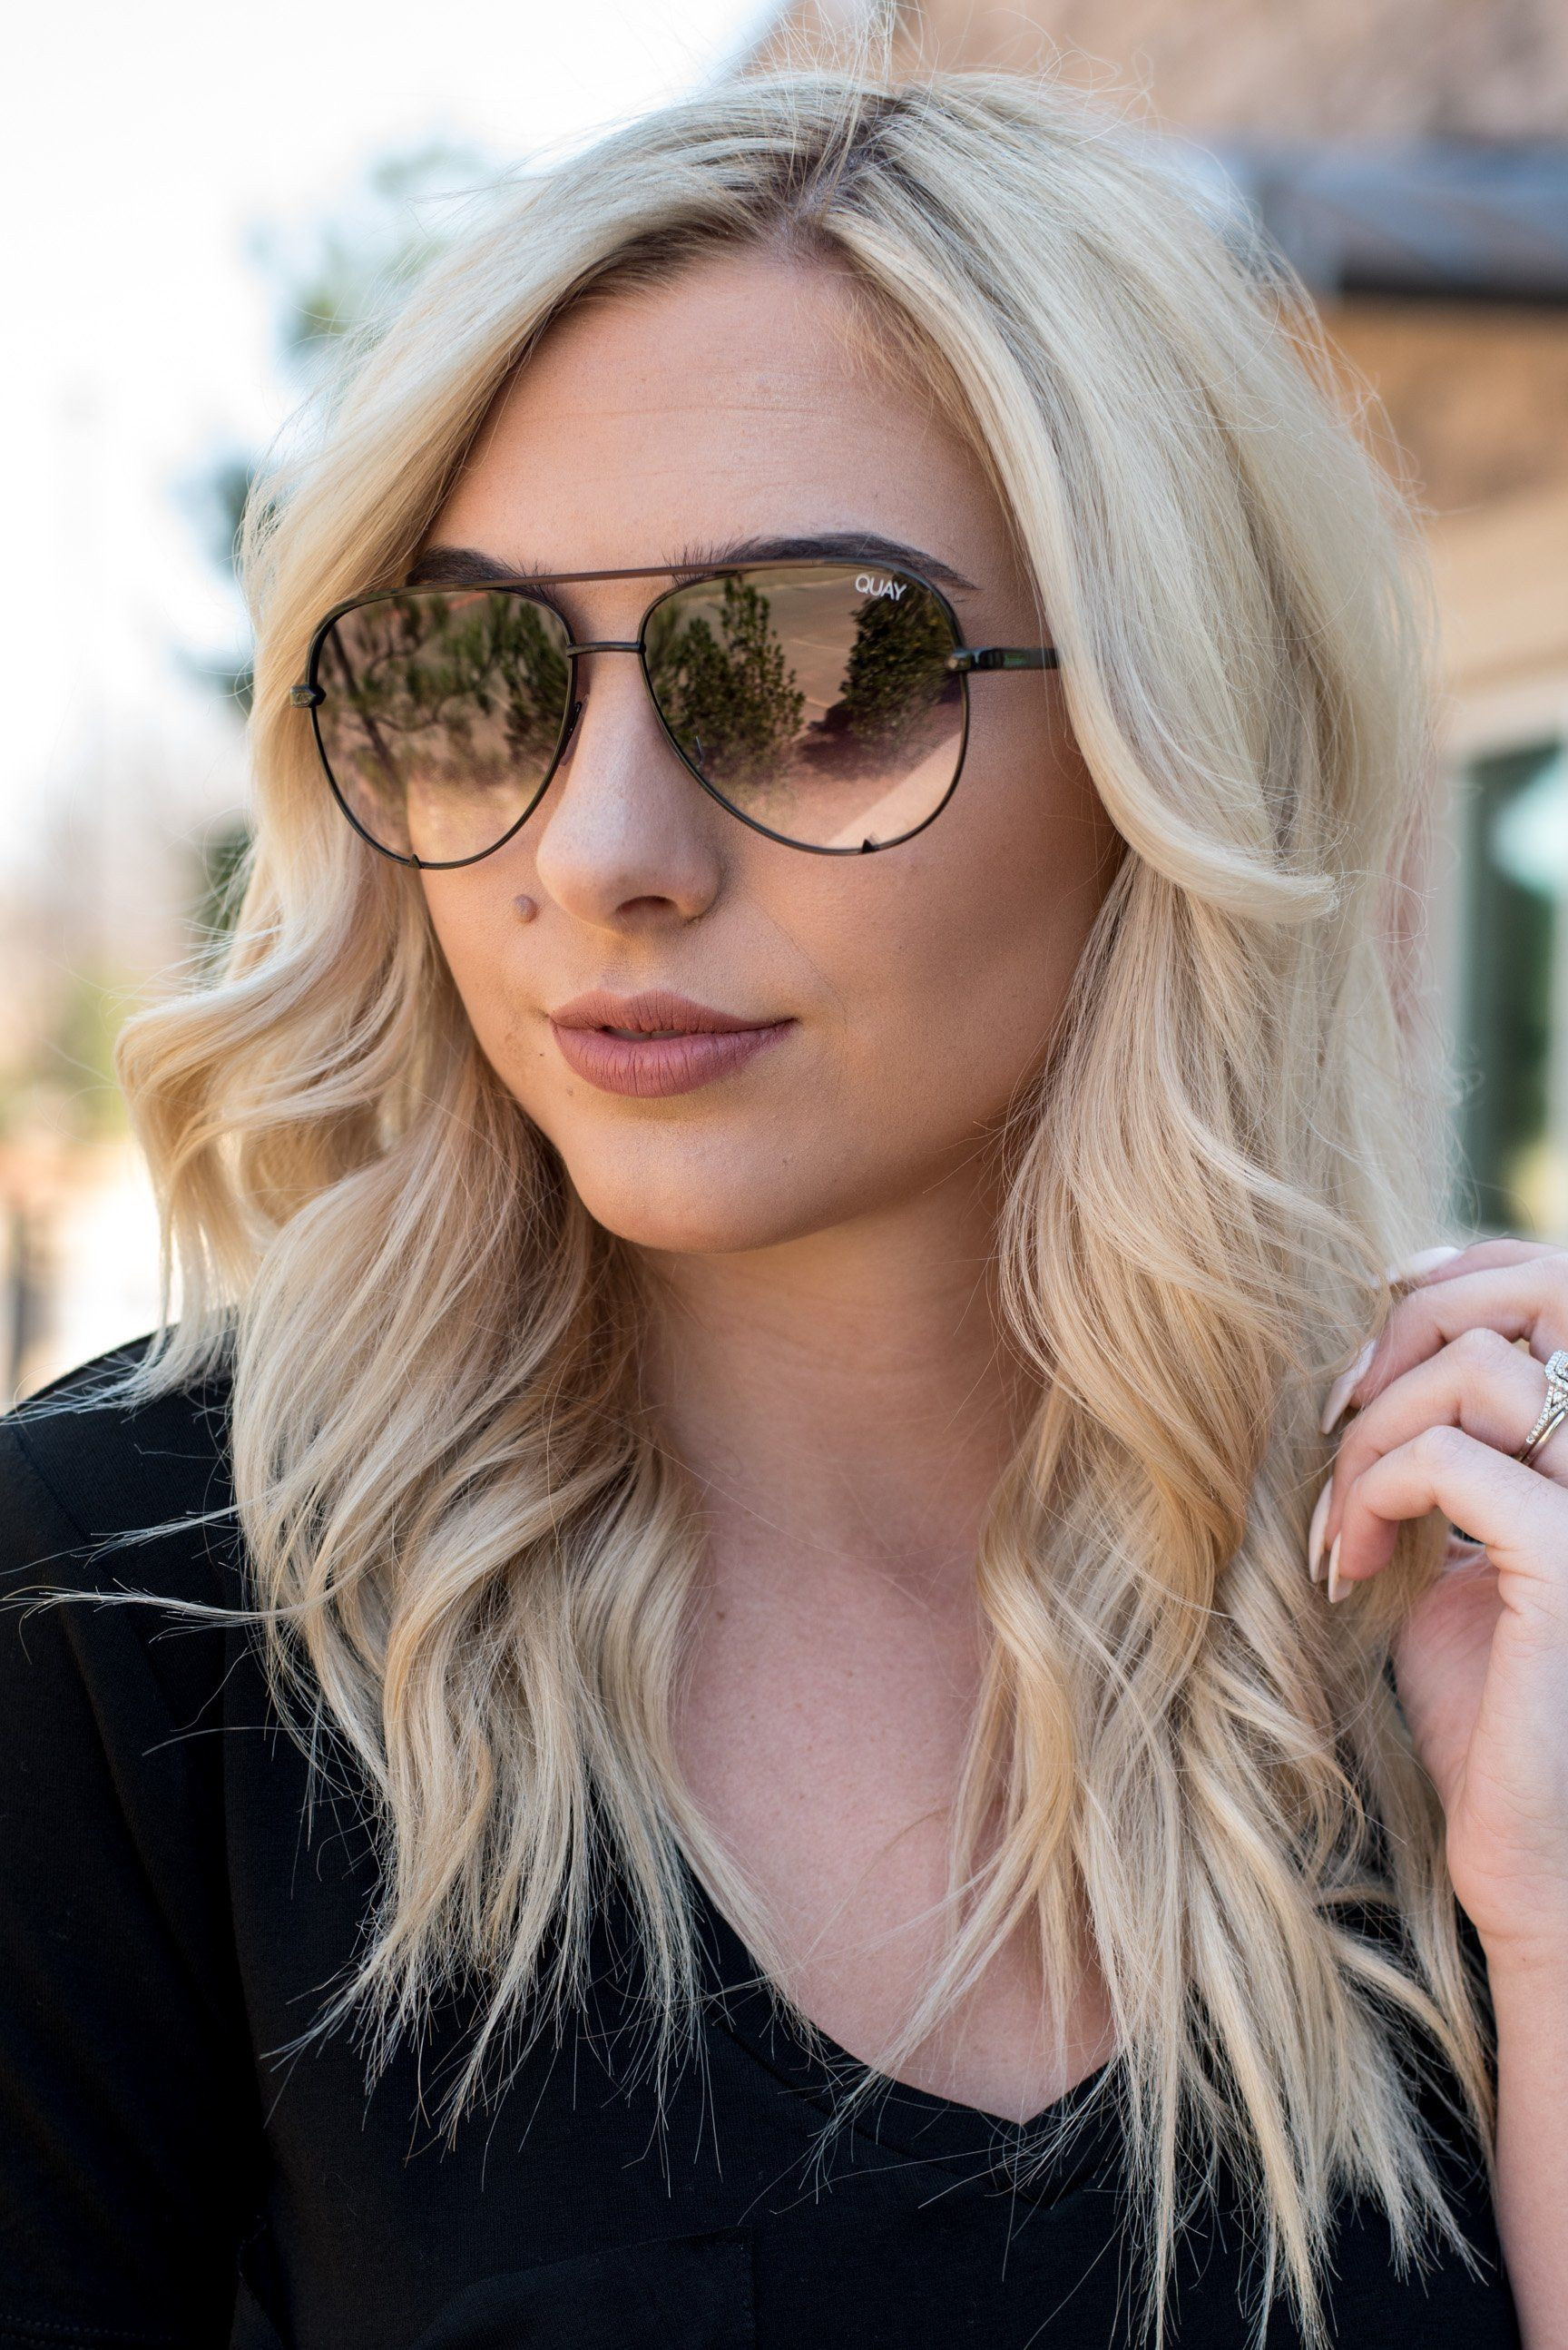 d2fb622b02 Quay High Key MINI sunglasses black smoke fade in 2019